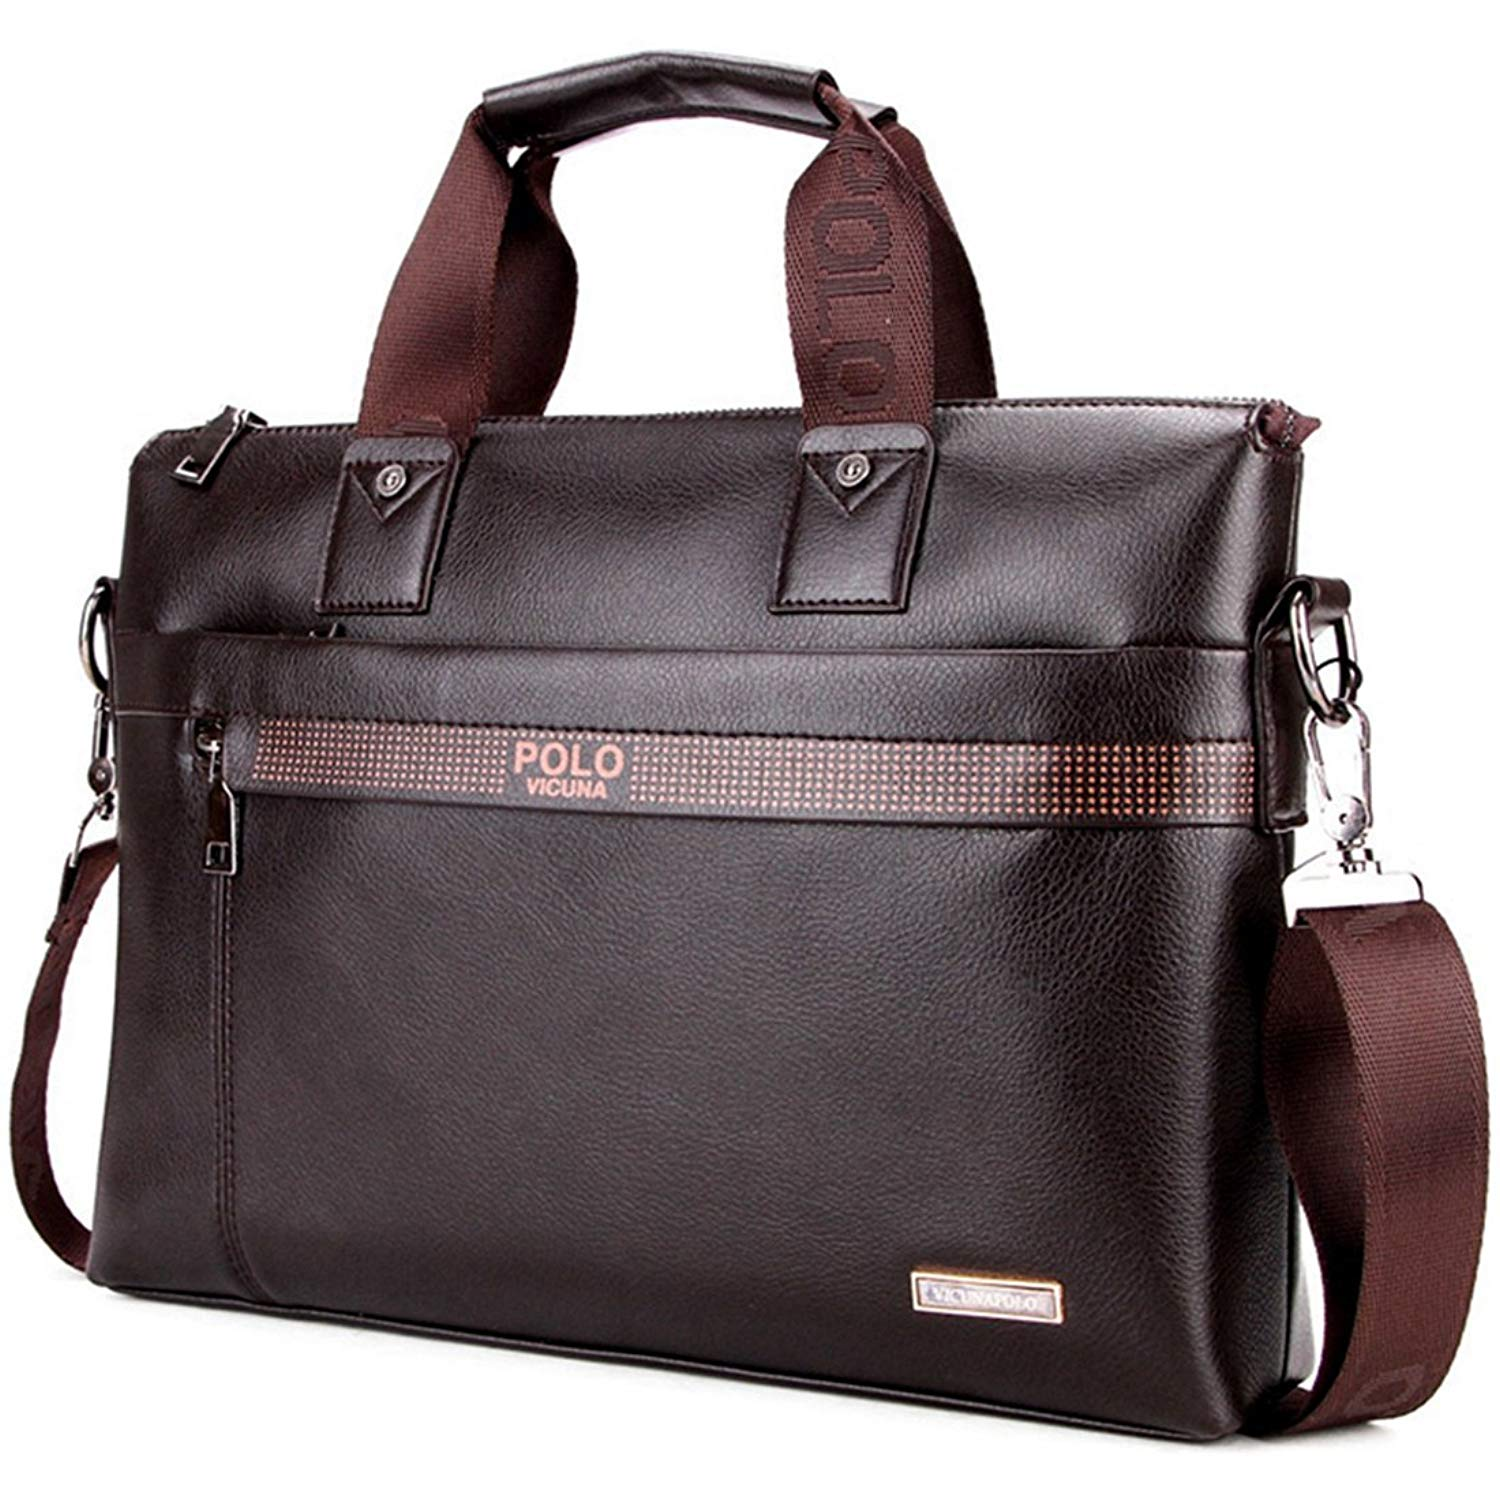 1d0d779ee34b Get Quotations · VICUNA POLO Man Briefcase Bag Messenger Bag Laptop Bag Man Bag  Shoulder Bag